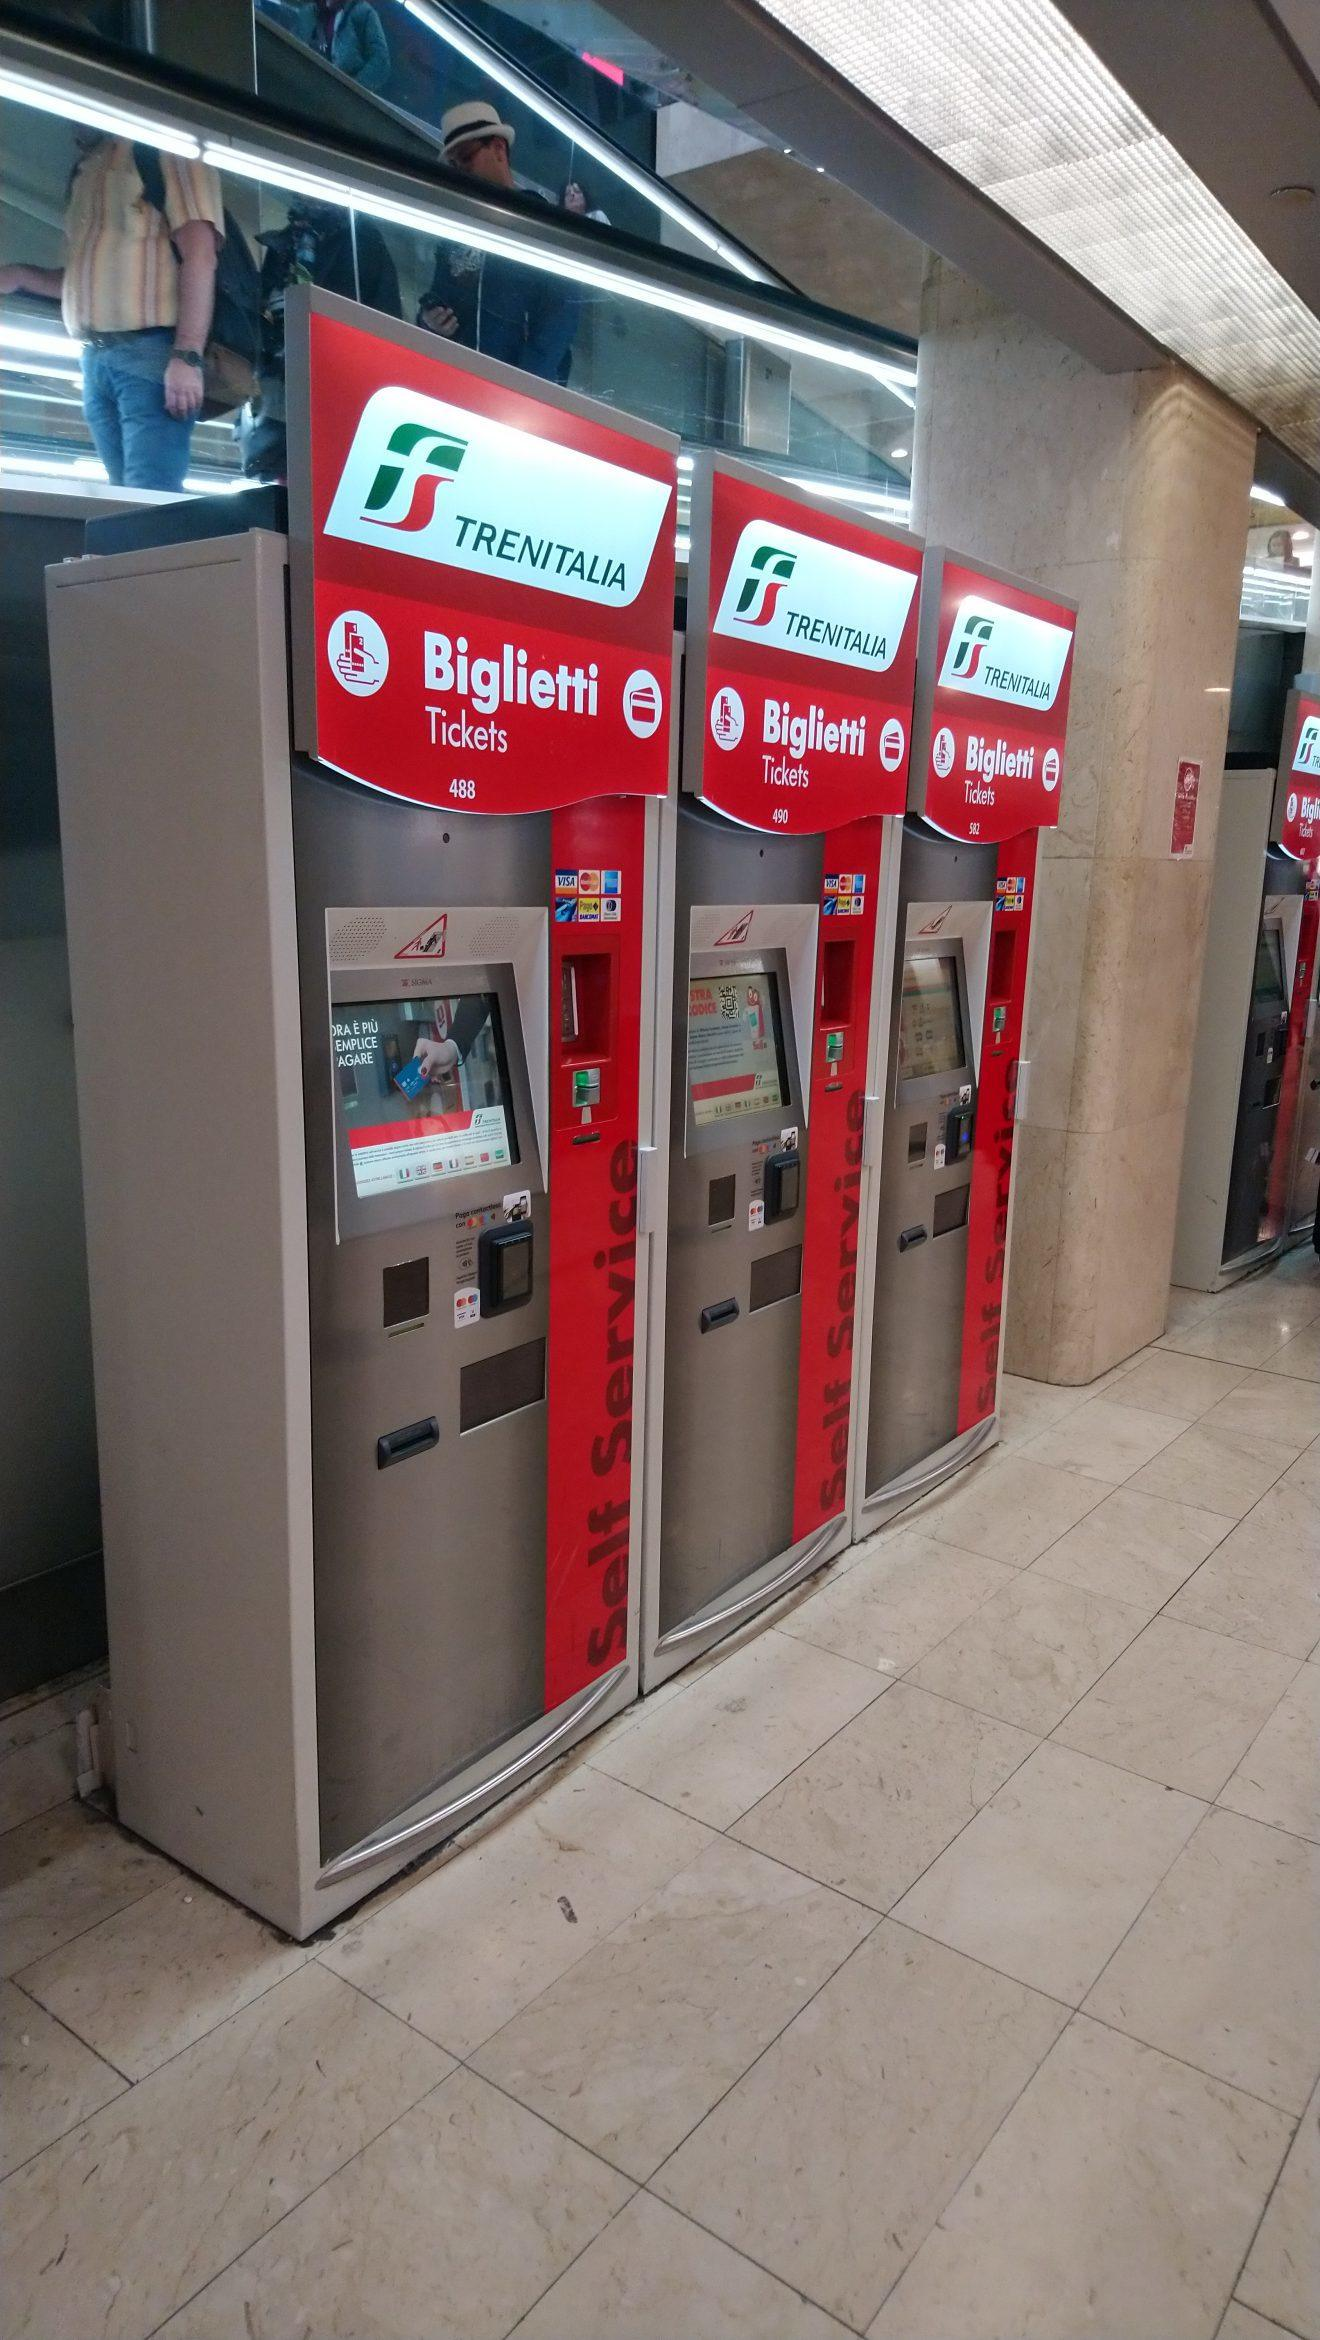 Italian ticket machines